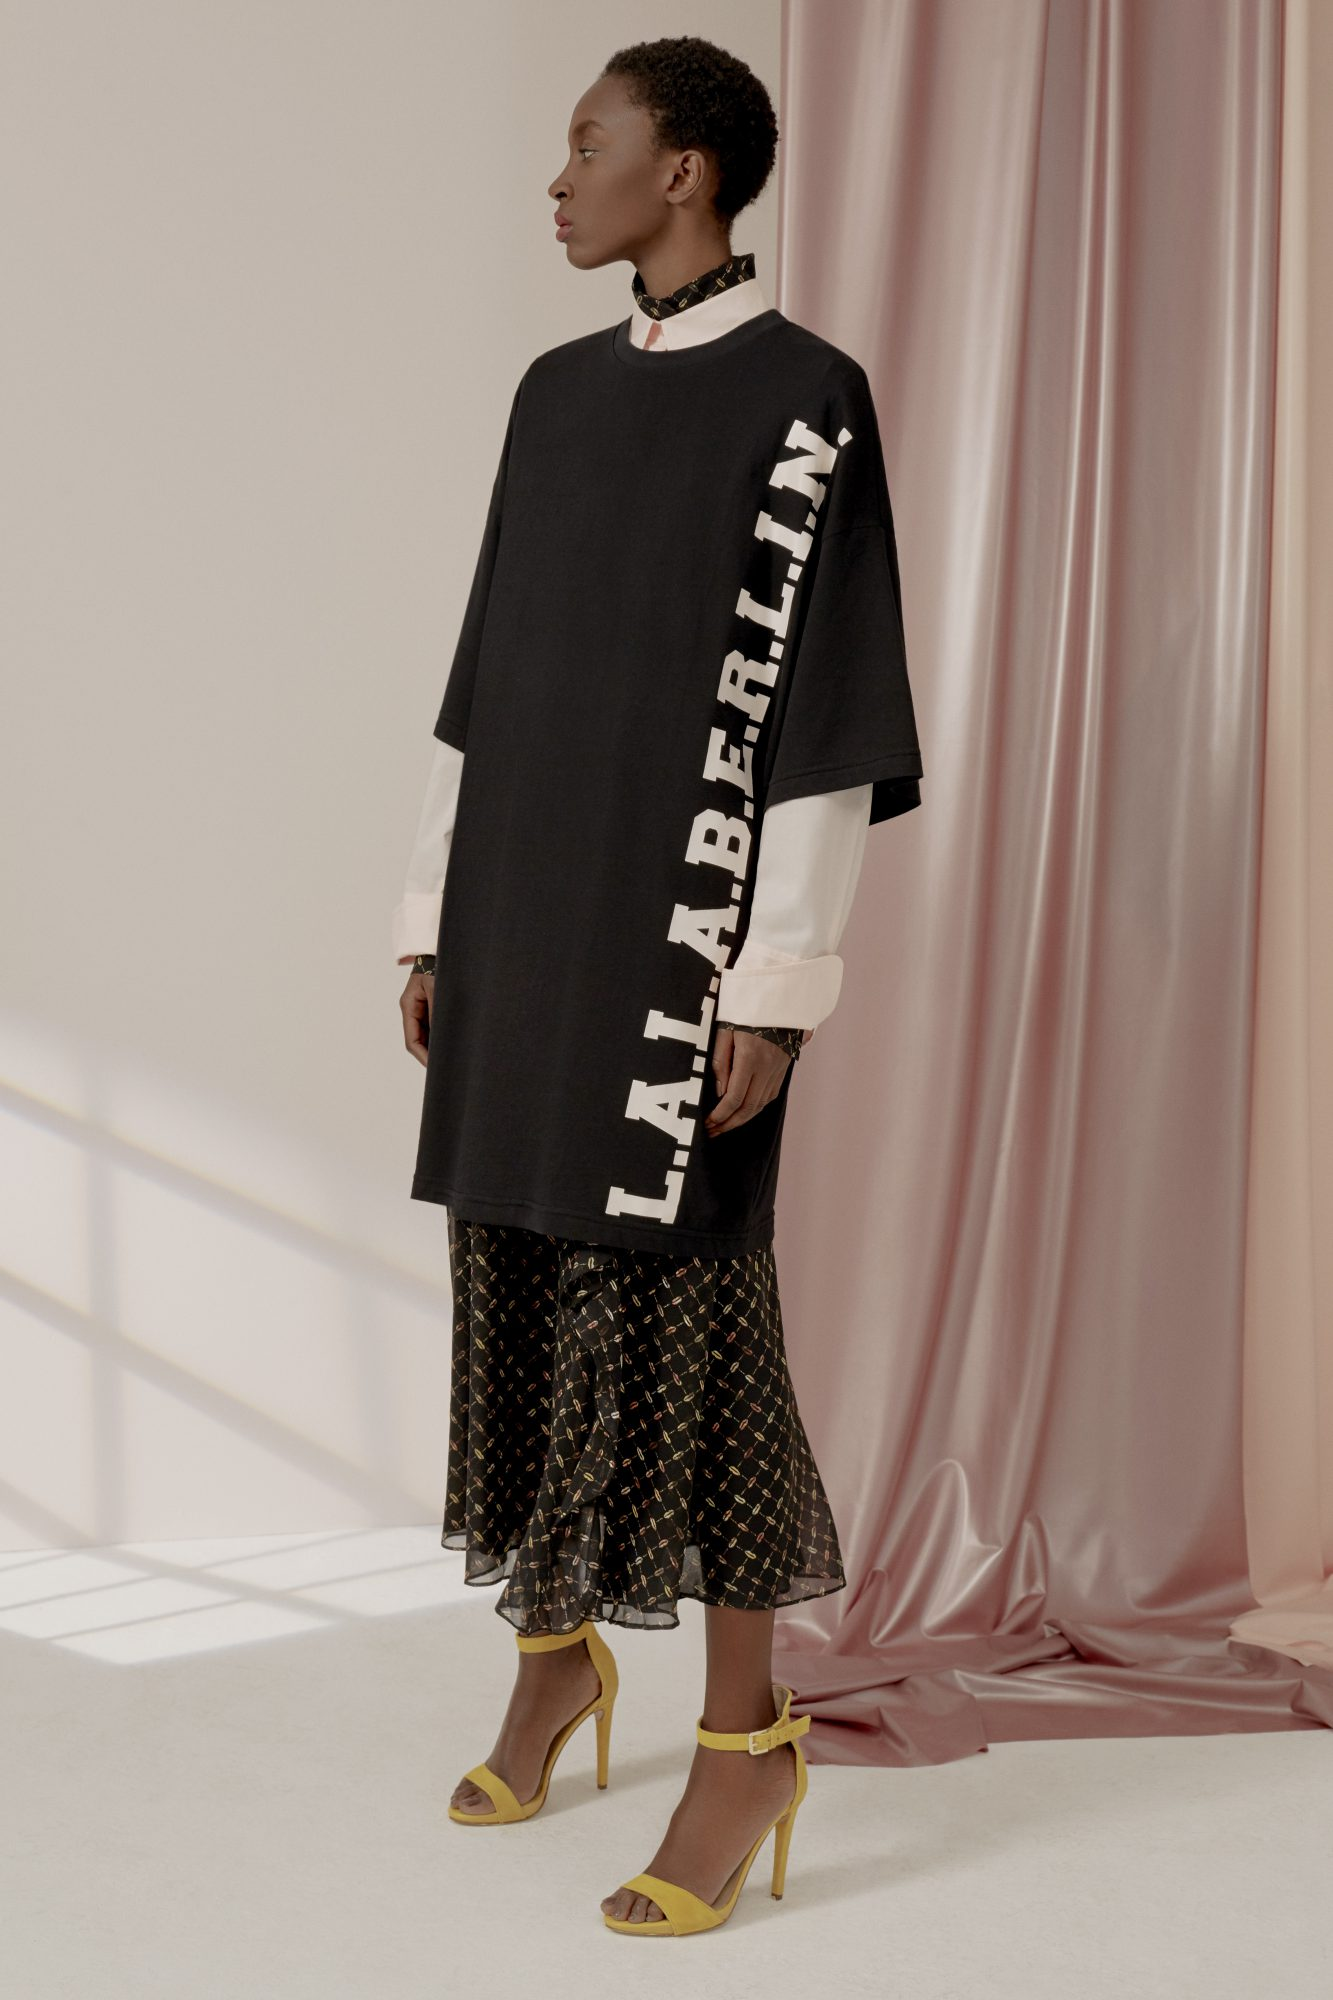 Lala_Berlin_Lookbook_Spring_Look_05_055_v1